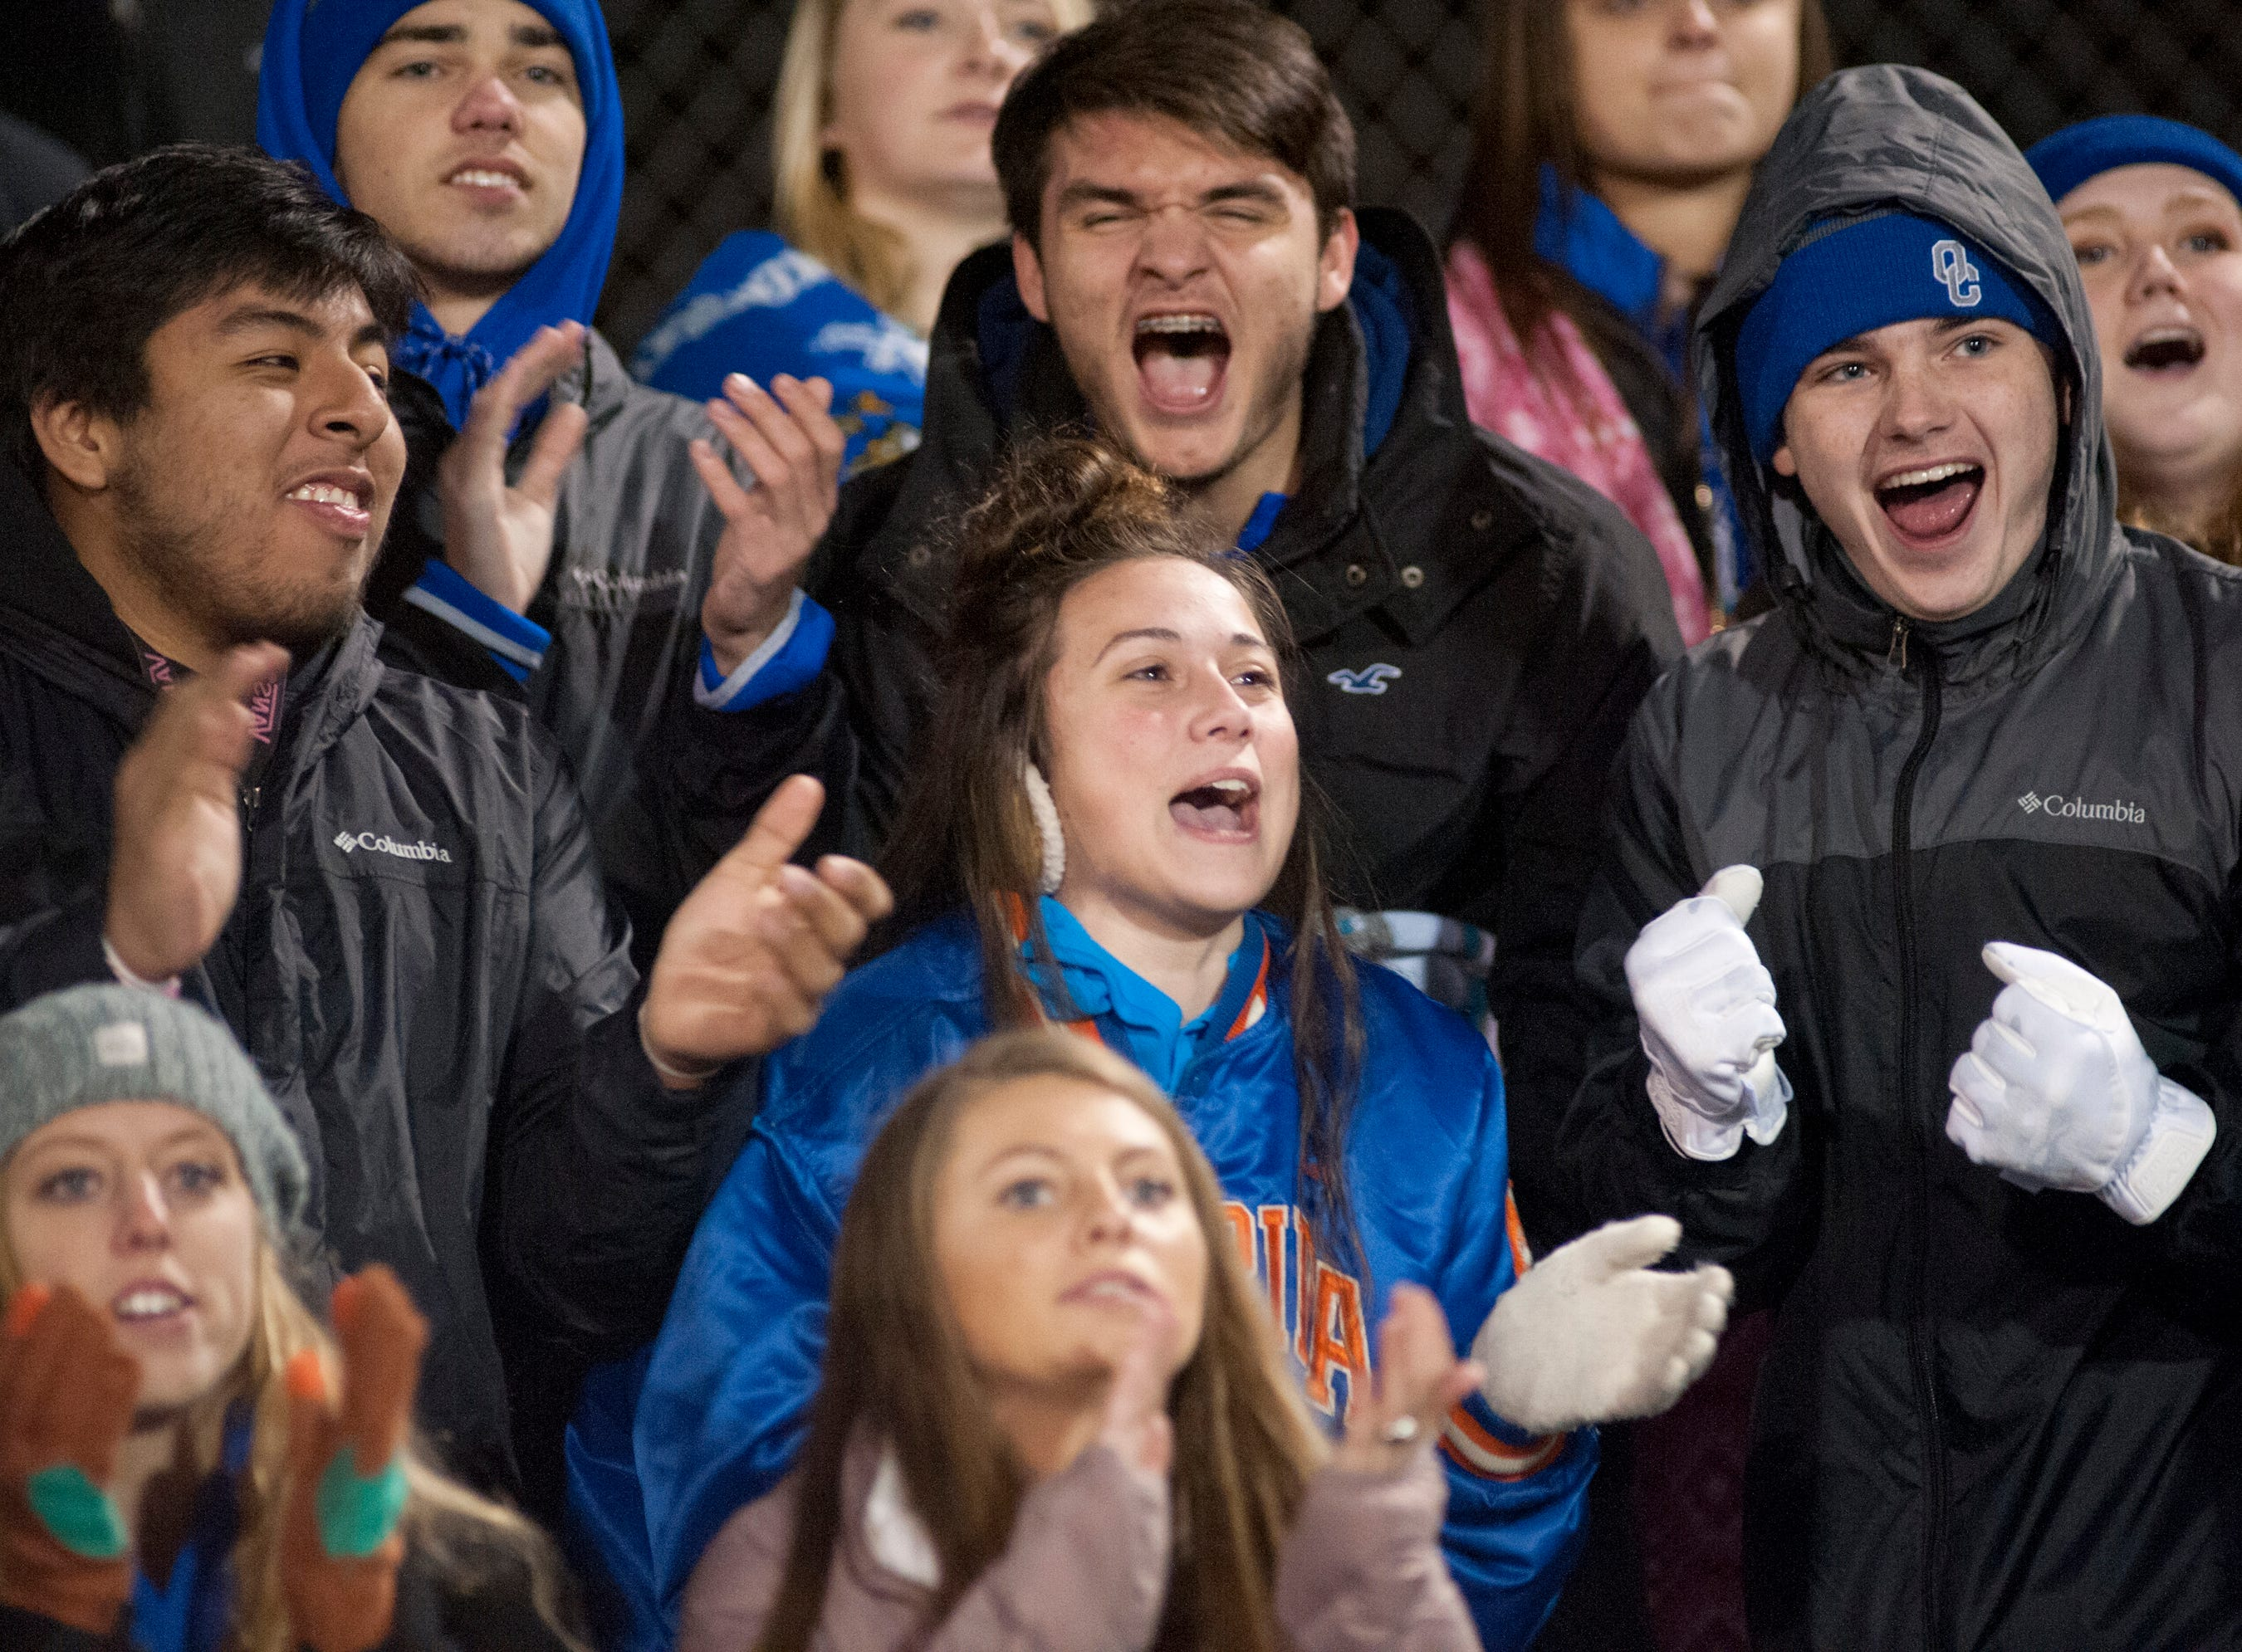 Oldham County fans cheer for their team during the game. Nov. 9, 2018